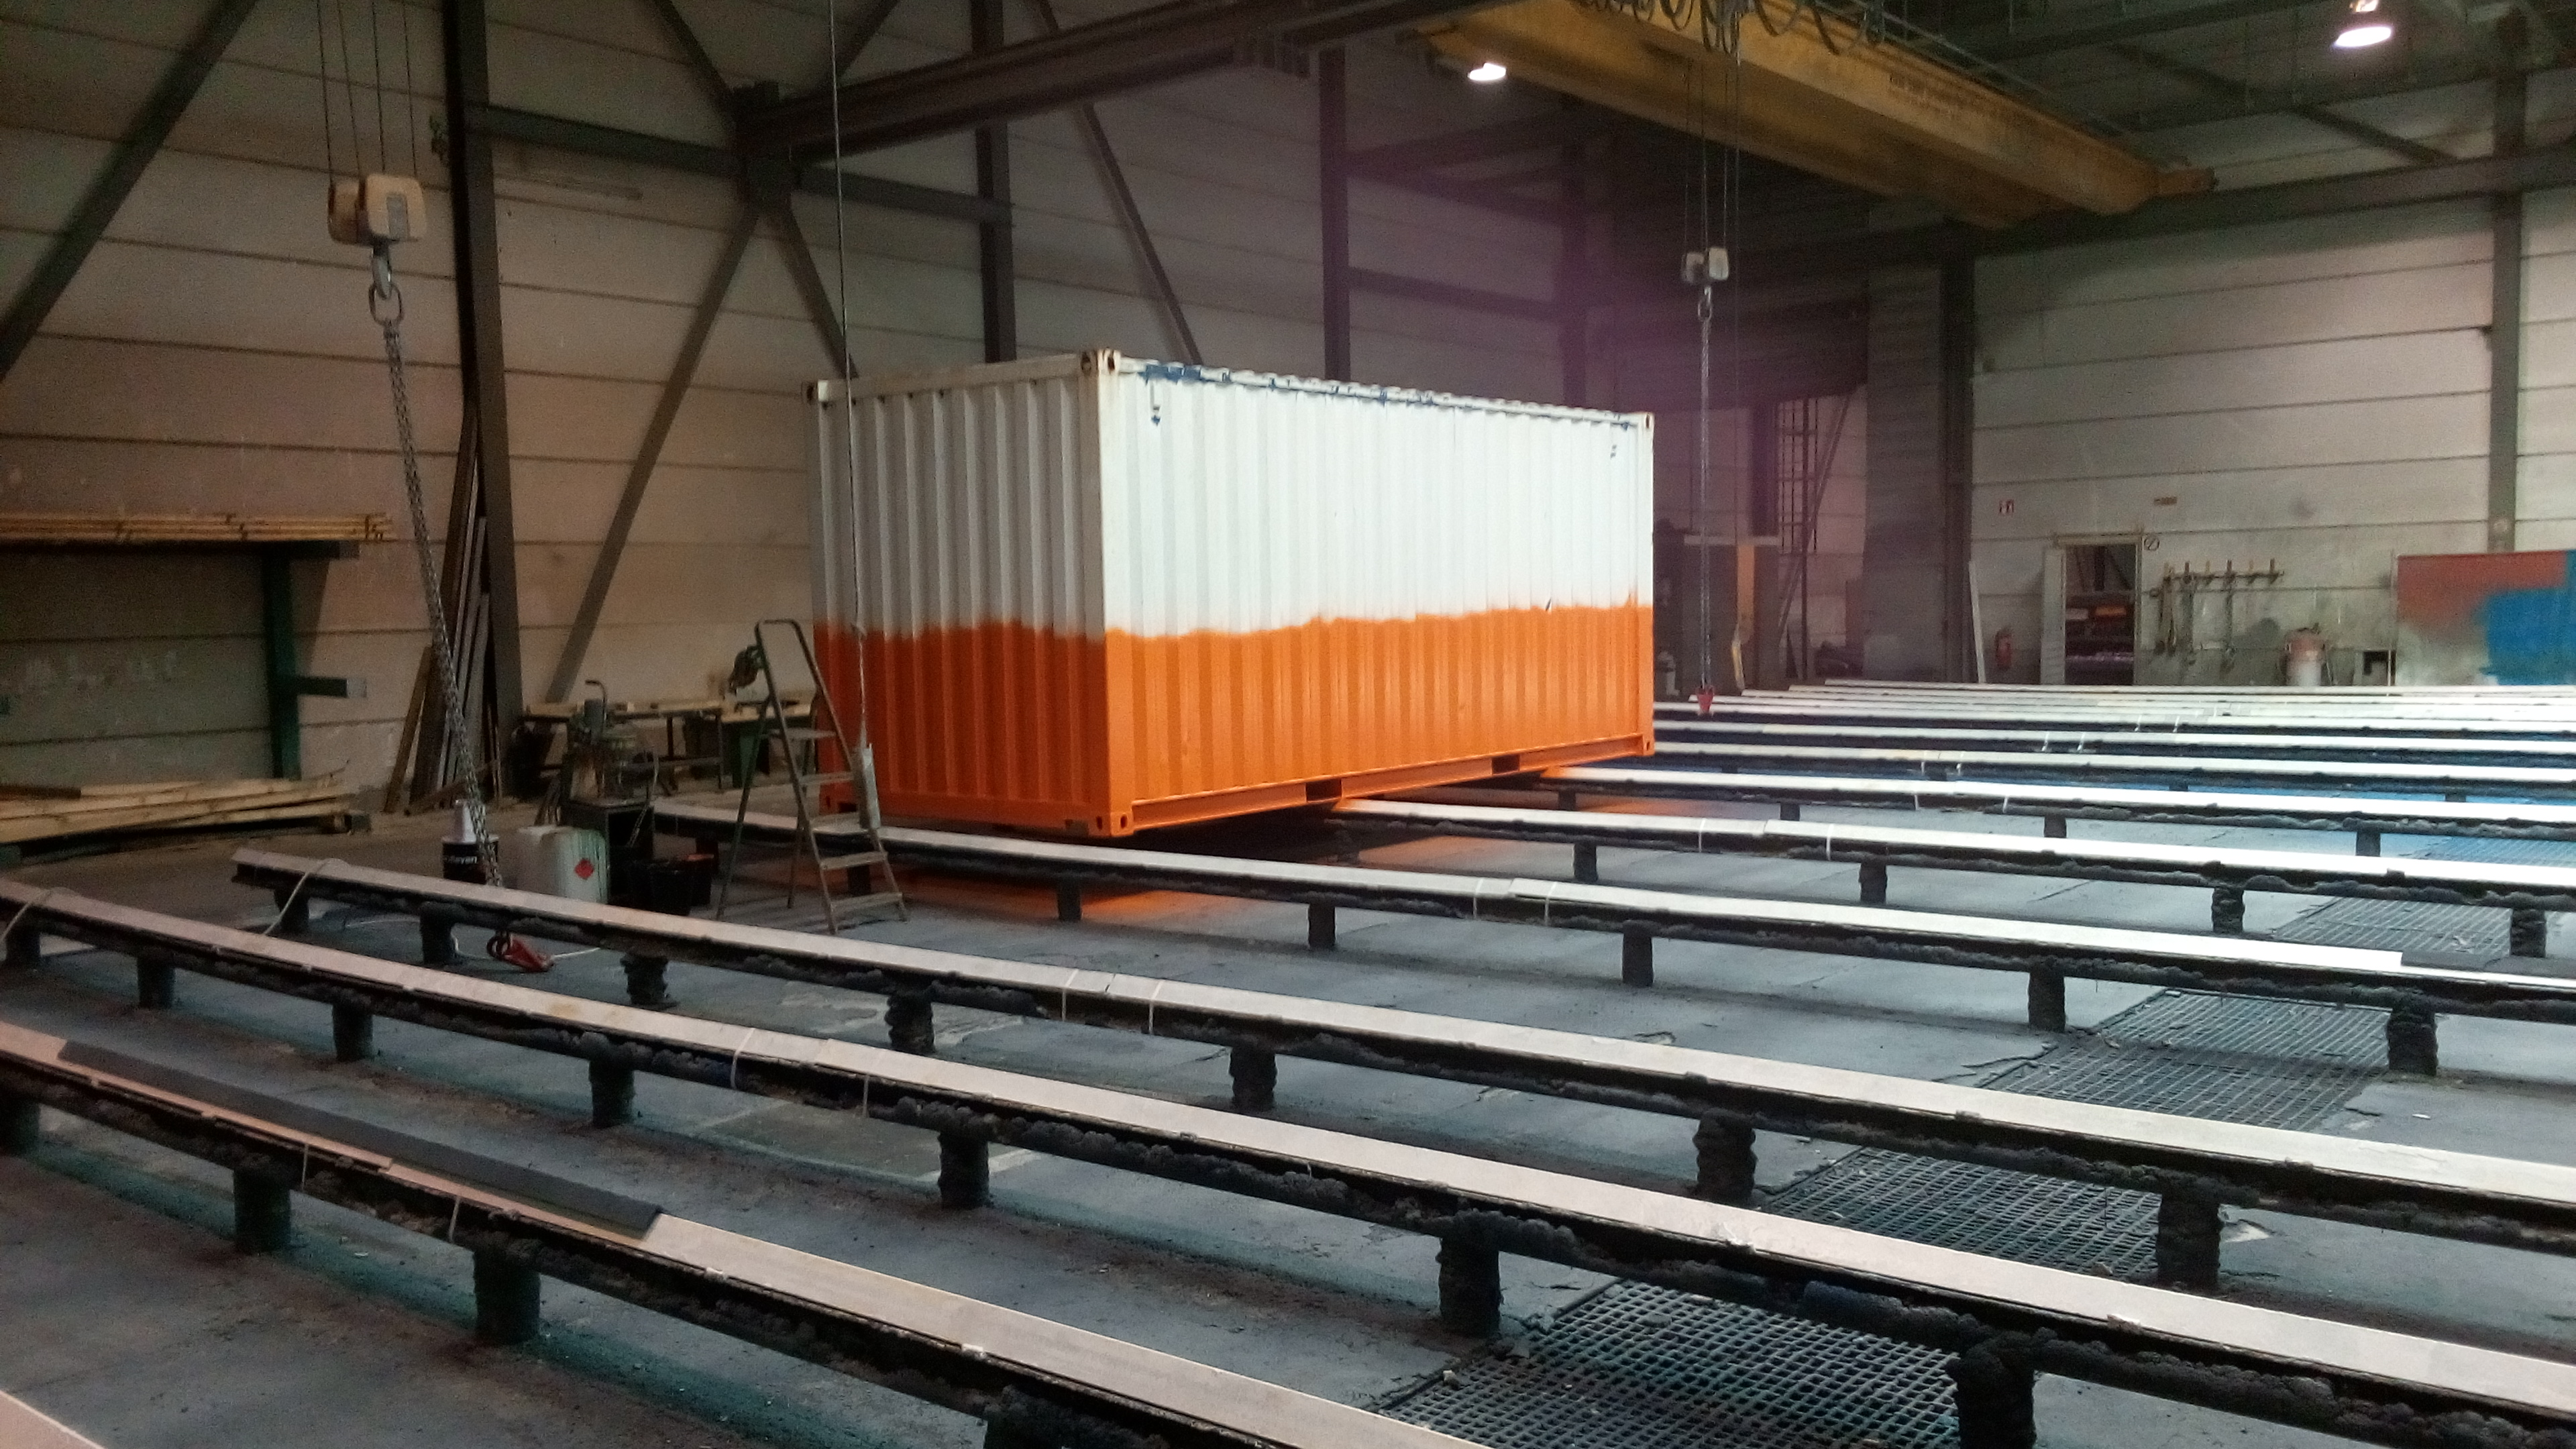 Container ouwehand3